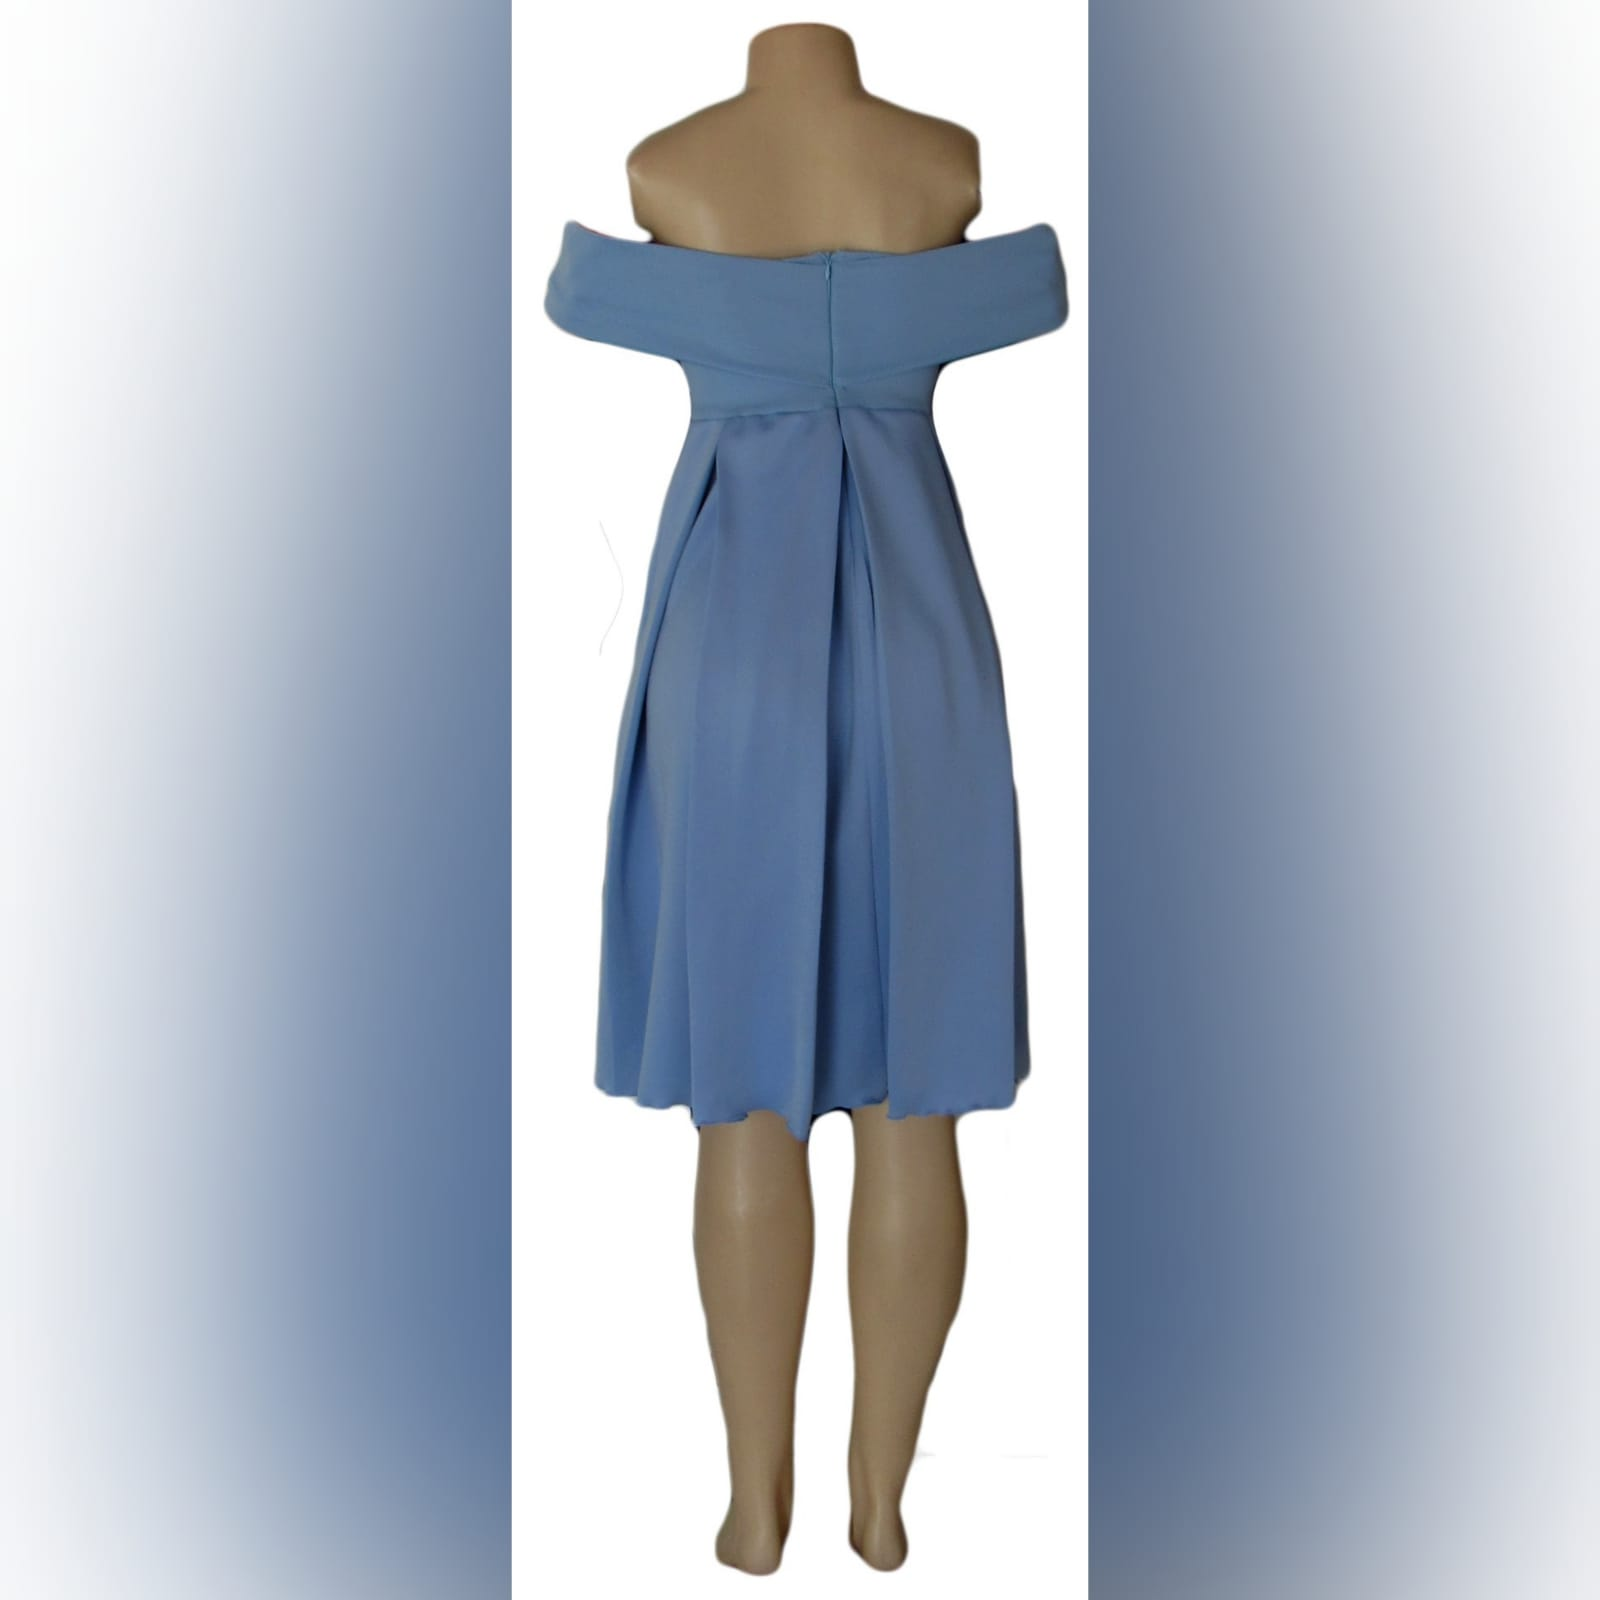 Short pale blue pleated cocktail dress 5 short pale blue pleated cocktail dress with a crossed bust design creating off shoulder short sleeves, pleated bottom with pockets.